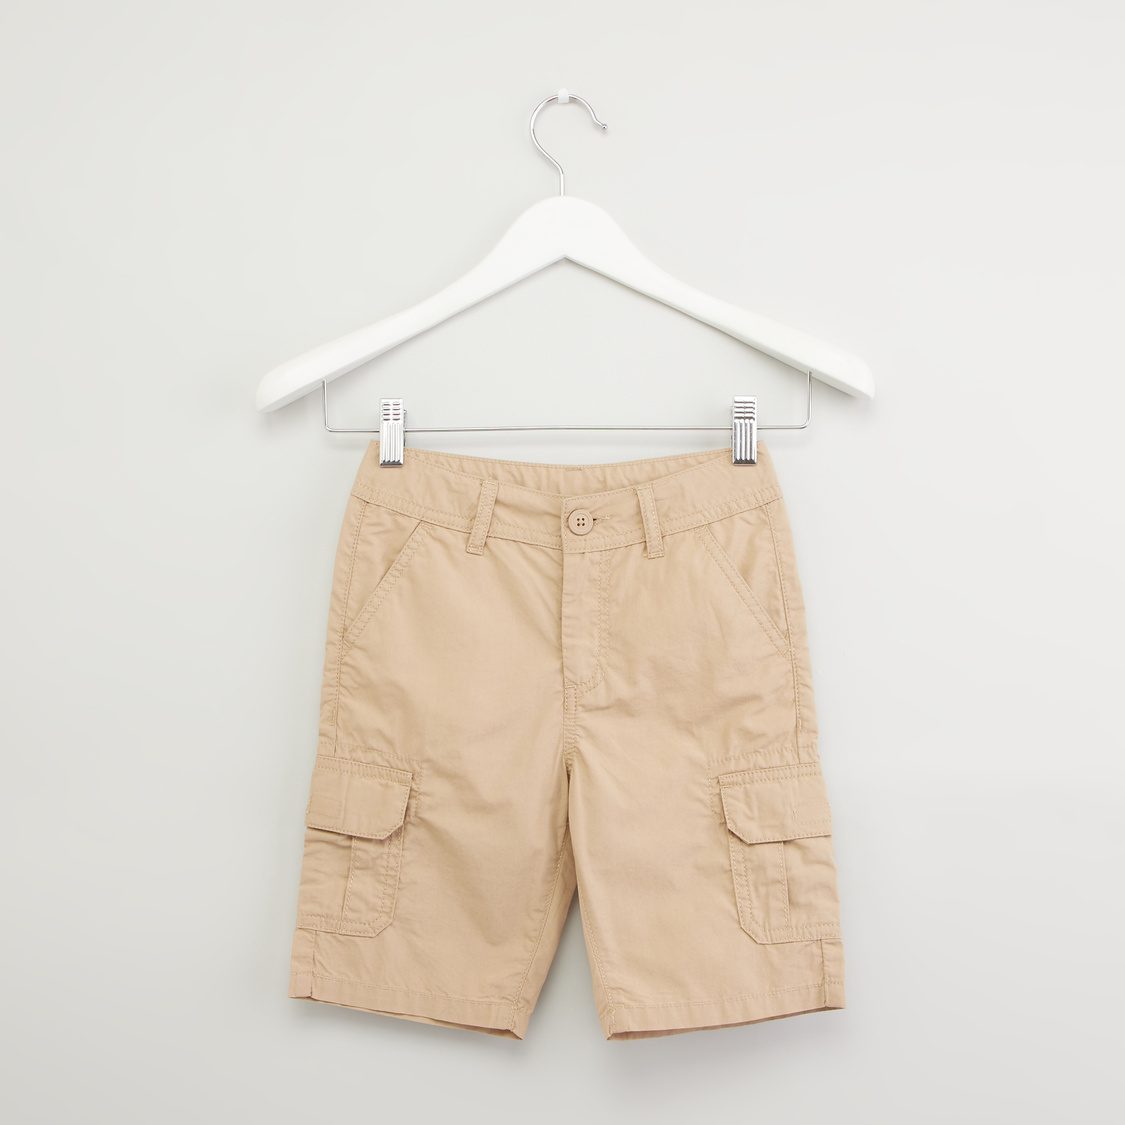 Plain Cargo Shorts with Pocket Detail and Belt Loops